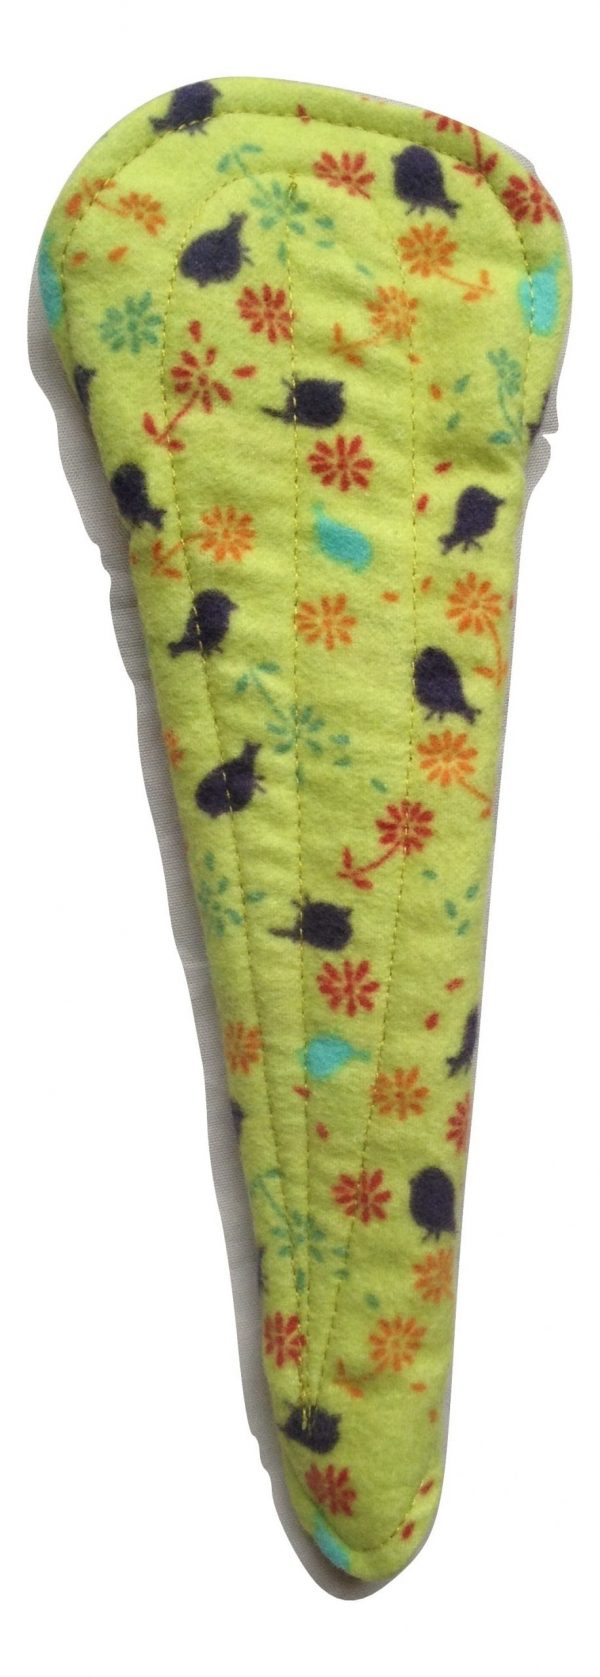 Angelpadz Blueberry Posy Cotton Flannel Thong Liner